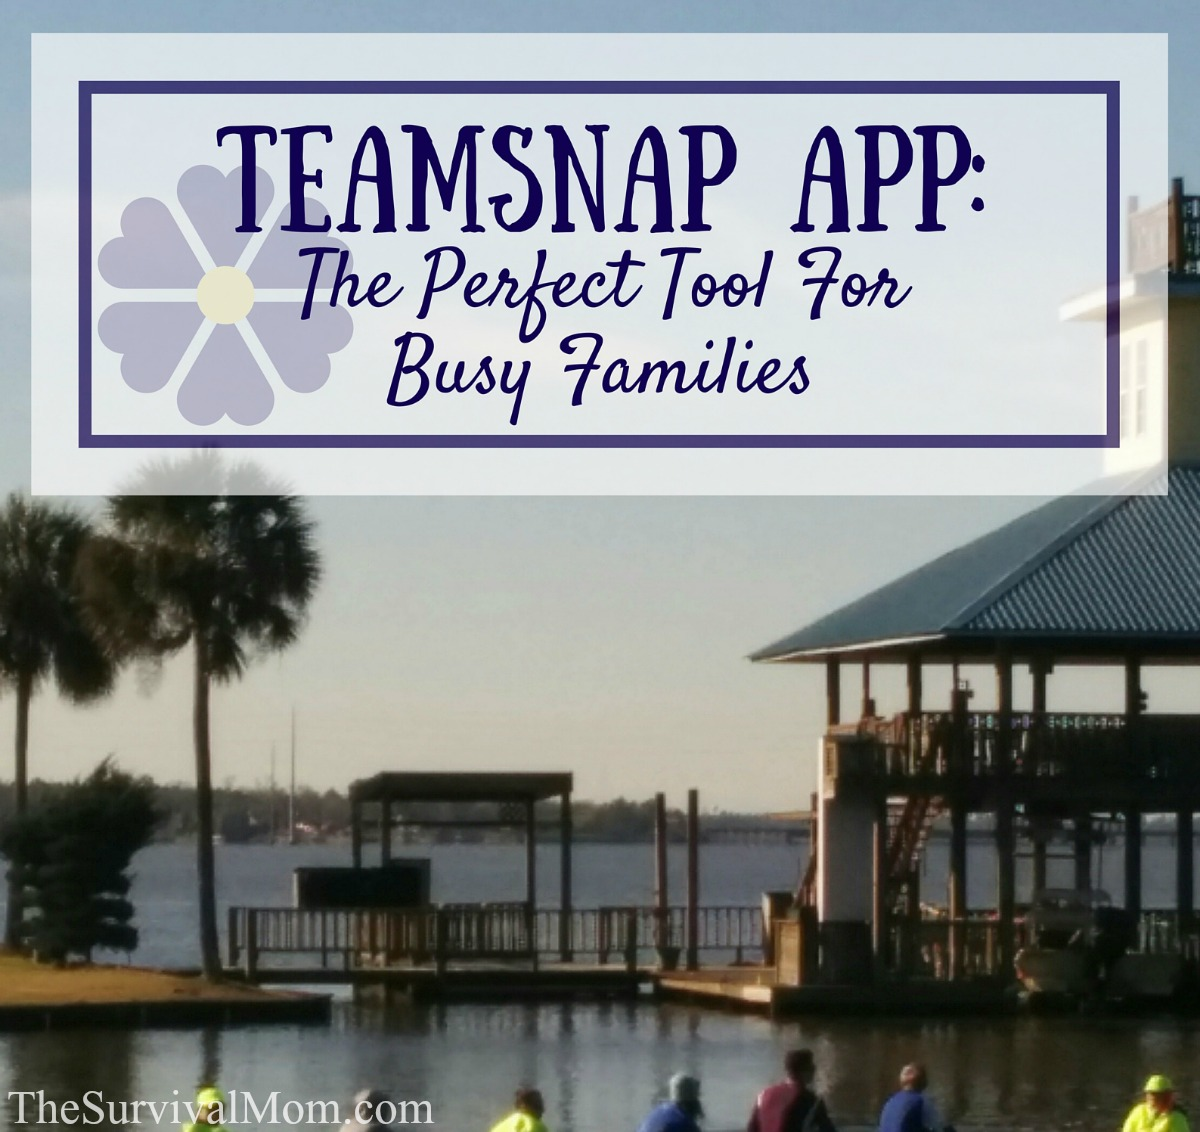 TeamSnap App: The Perfect Tool For Busy Families via The Survival Mom